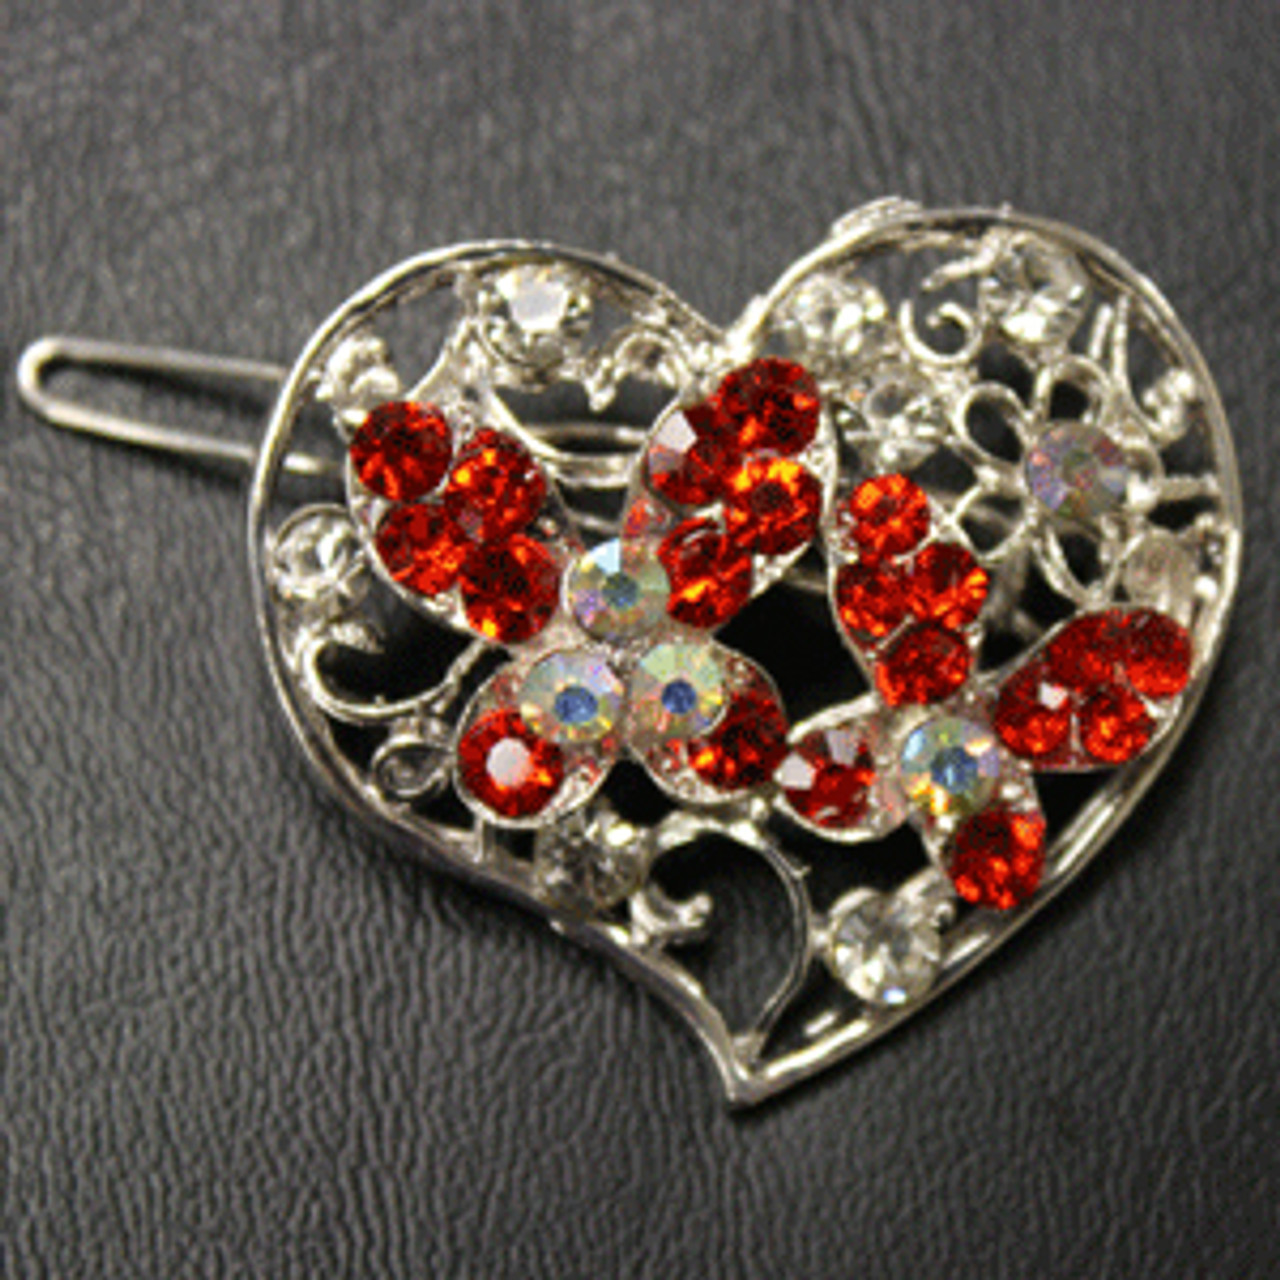 Red heart barrette